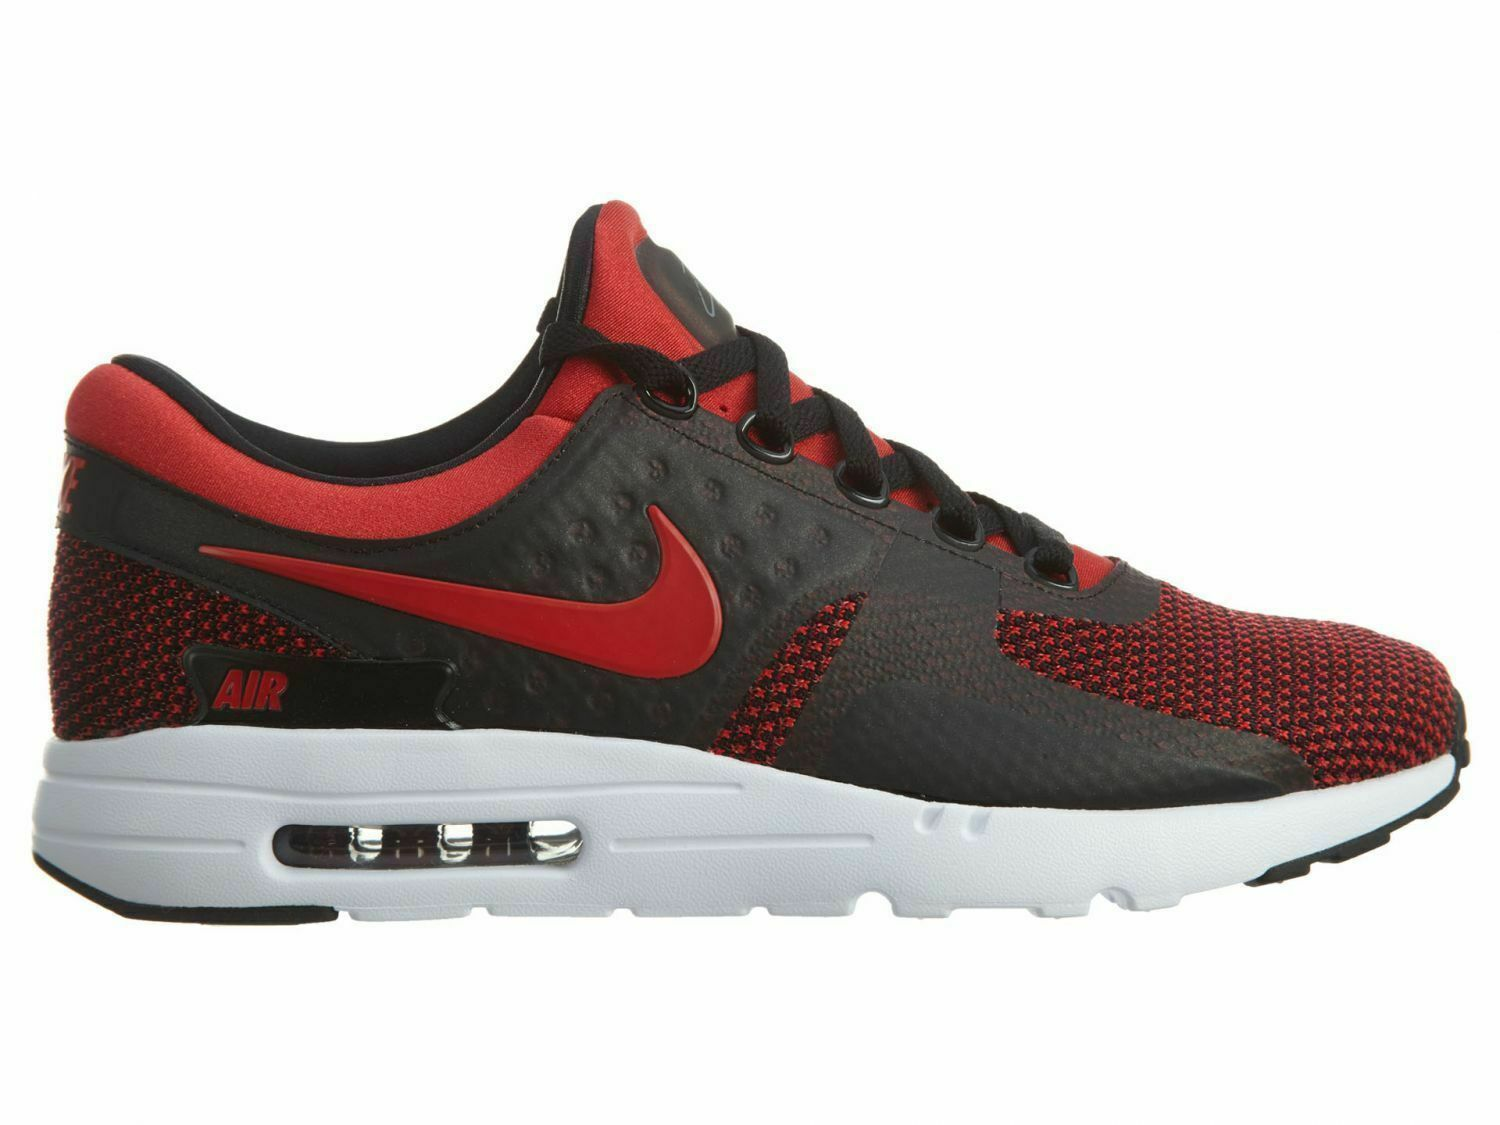 new product 84cc5 c73bb Nike Air Max Zero Essential 0 Men Lifestyle Shoes Black Red Bred 876070-600  11.5